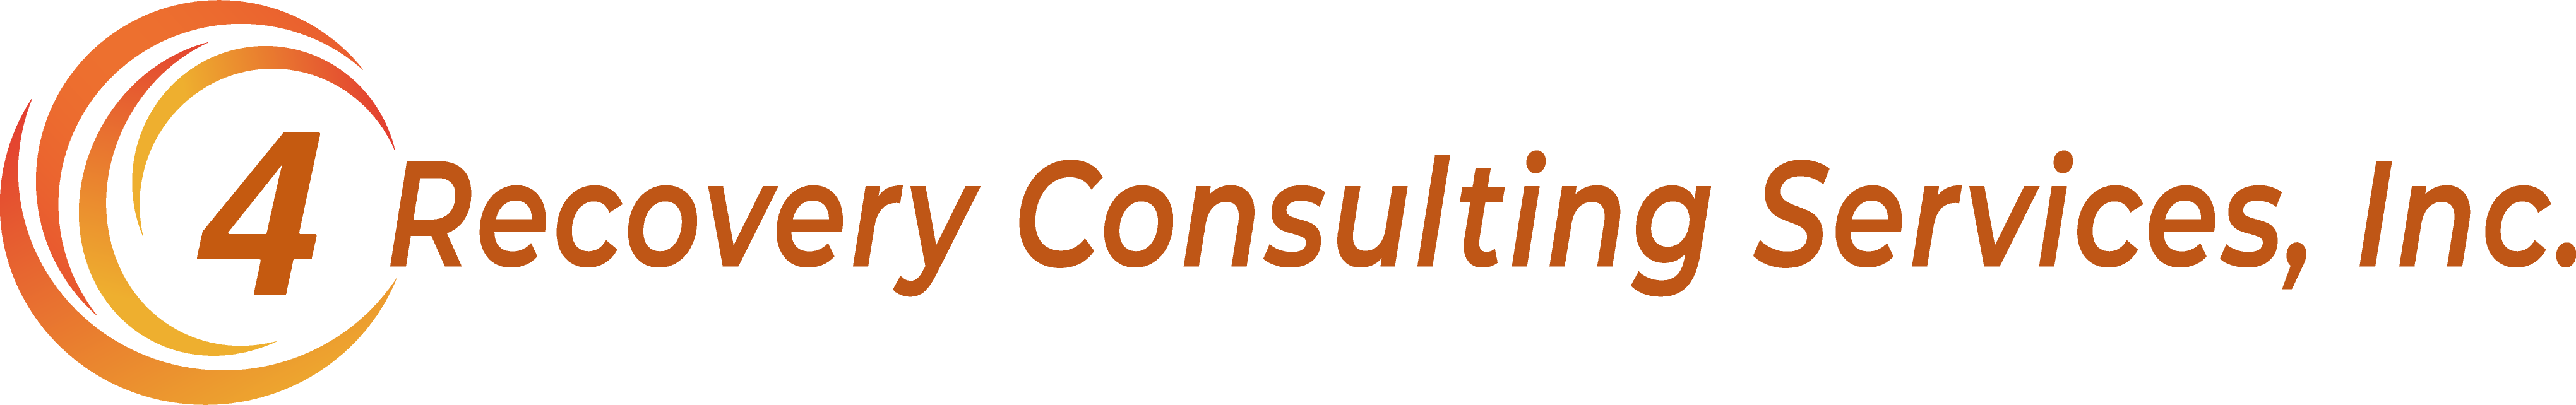 4 Recovery Consulting Services